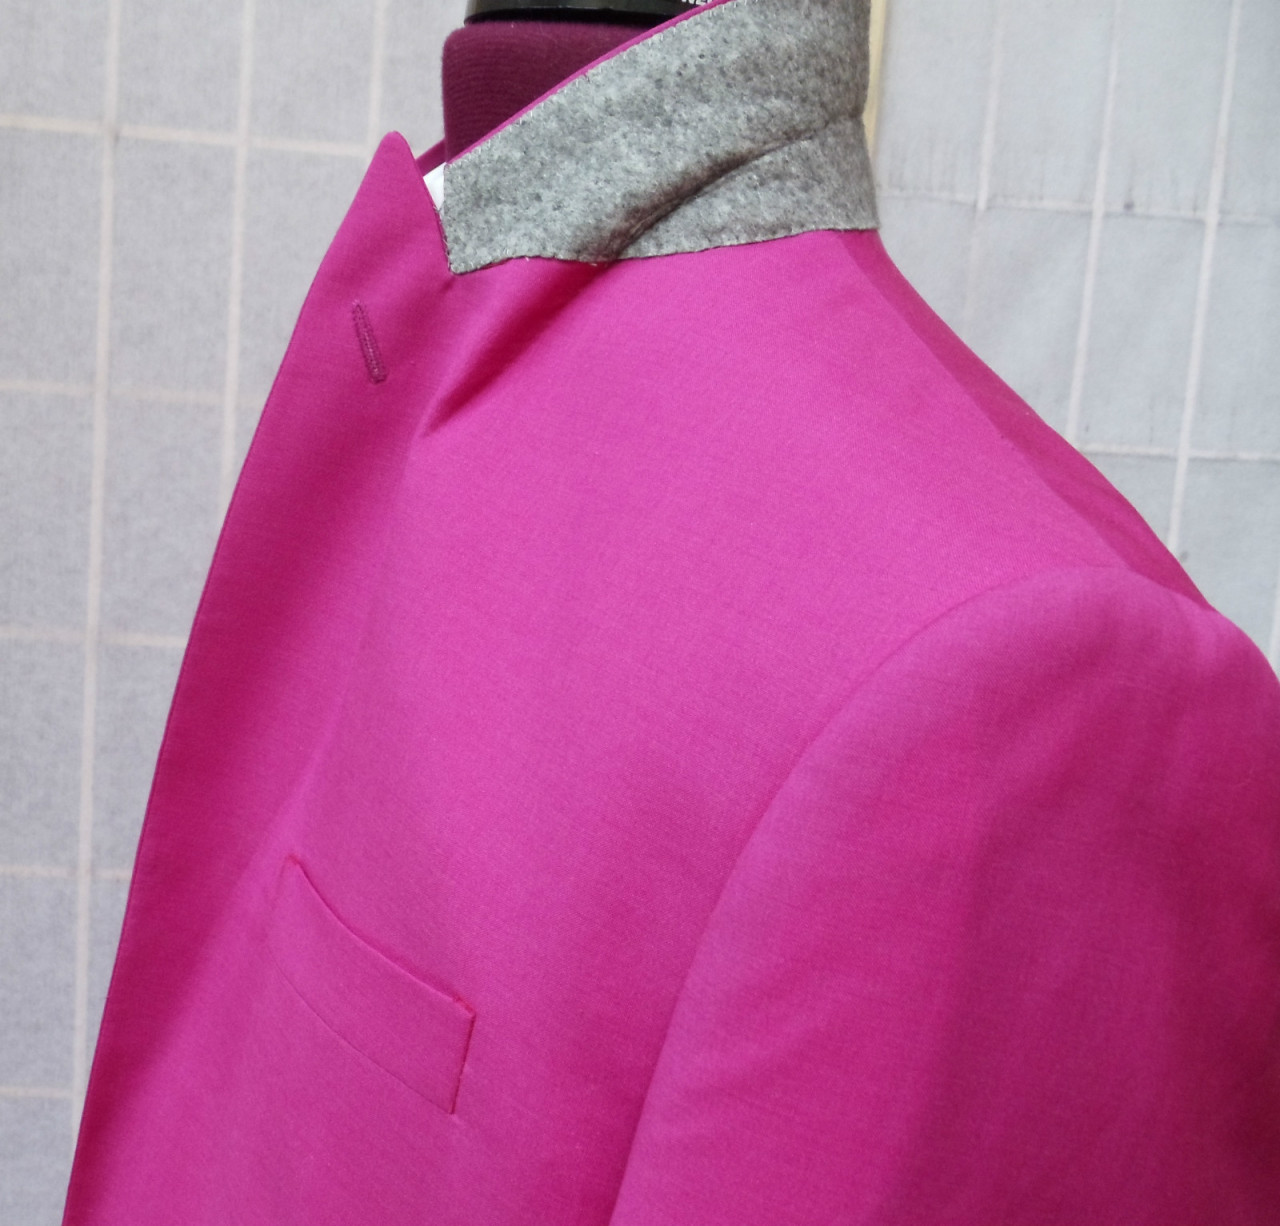 neon pink suit (it 48) • helmut langUS $449.95 BIN